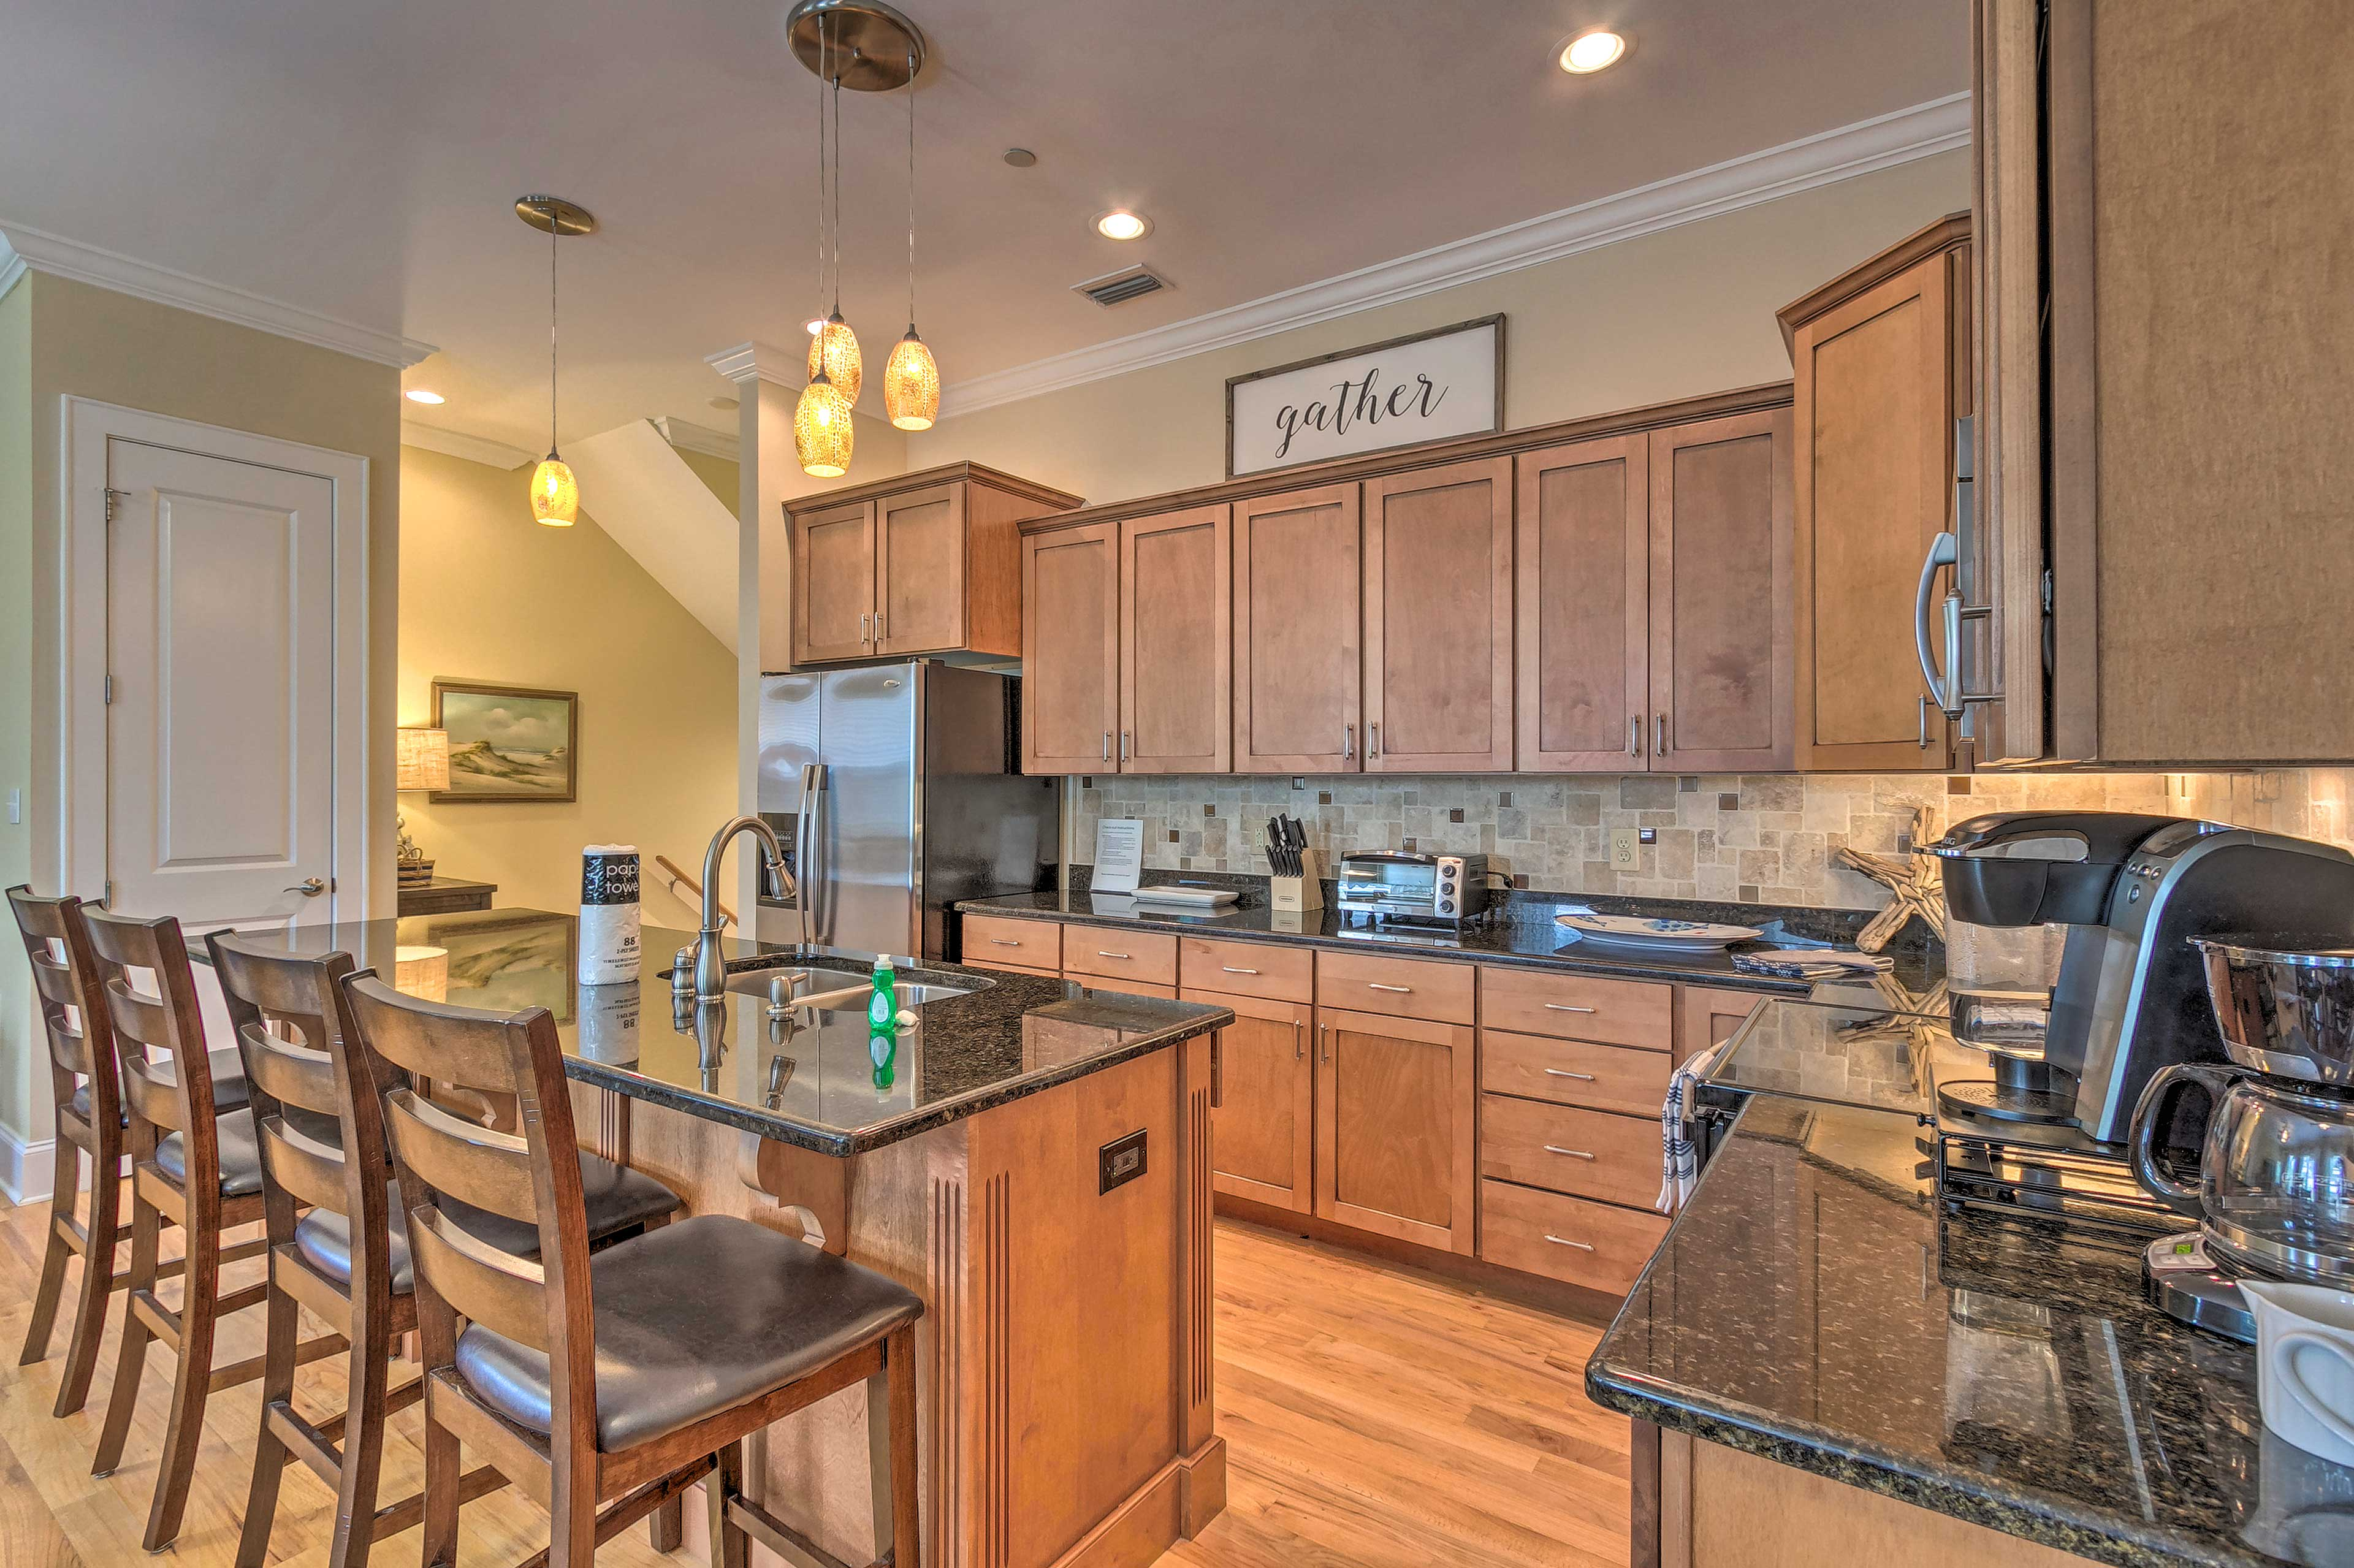 This 3-story retreat offers a pristine fully equipped kitchen.